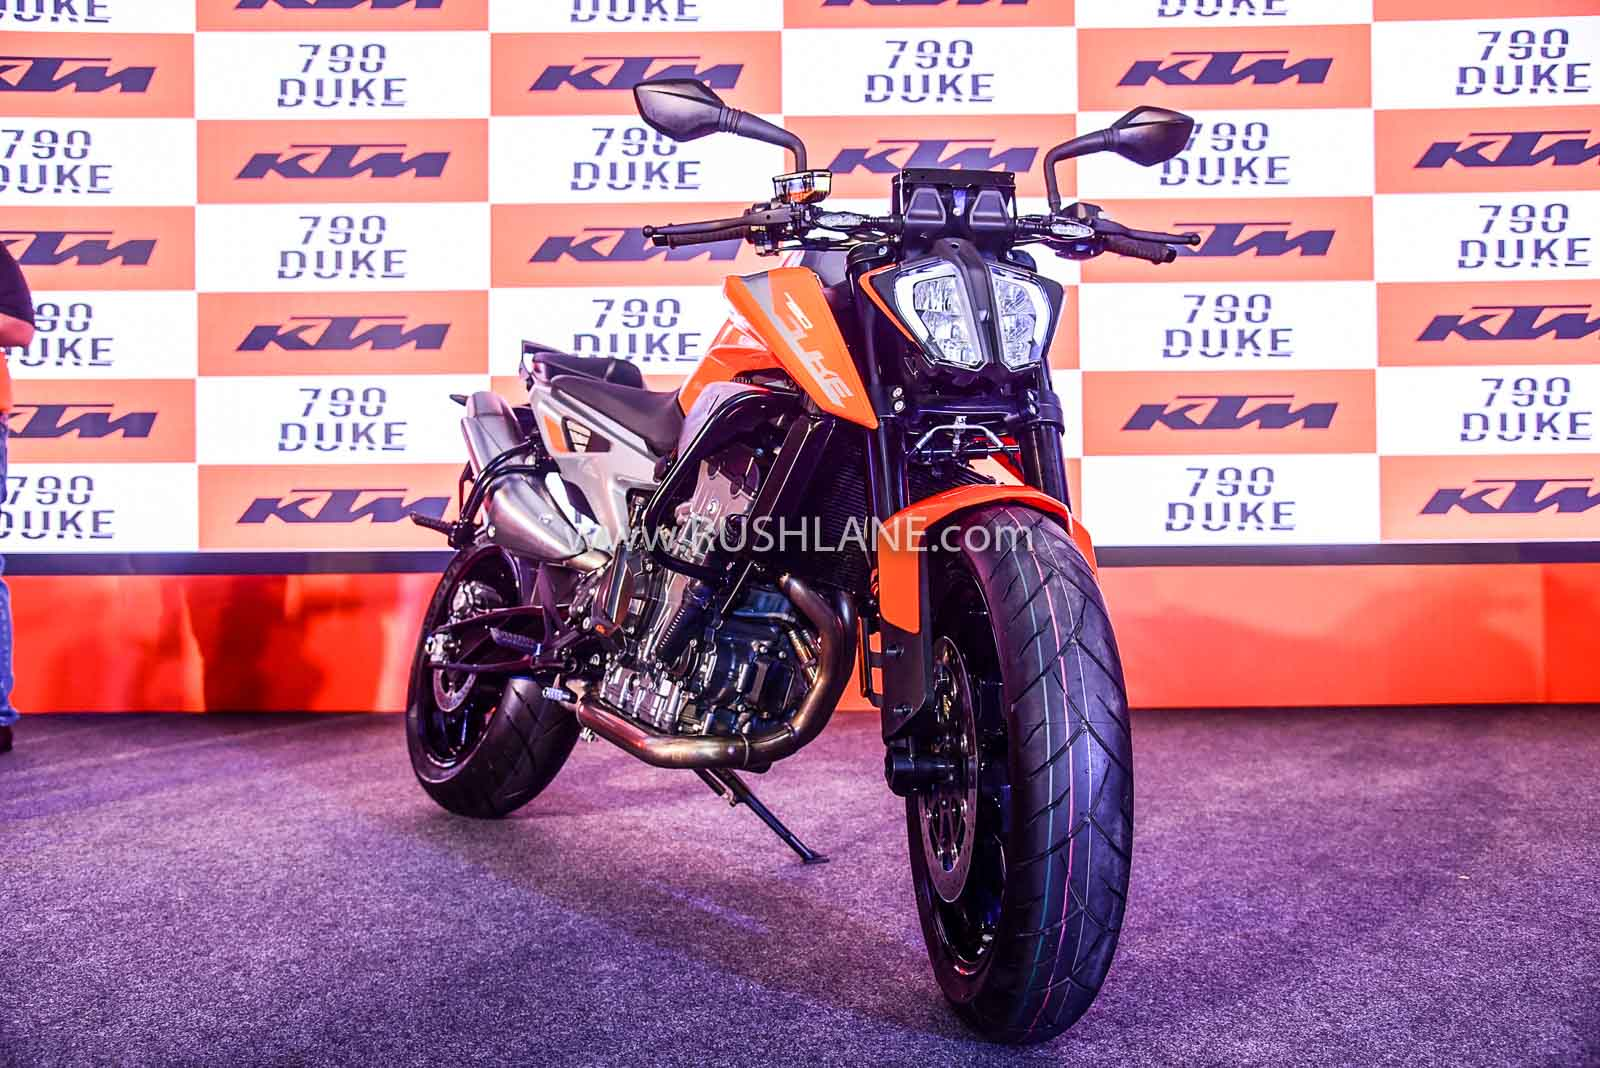 KTM 790 Duke launch image